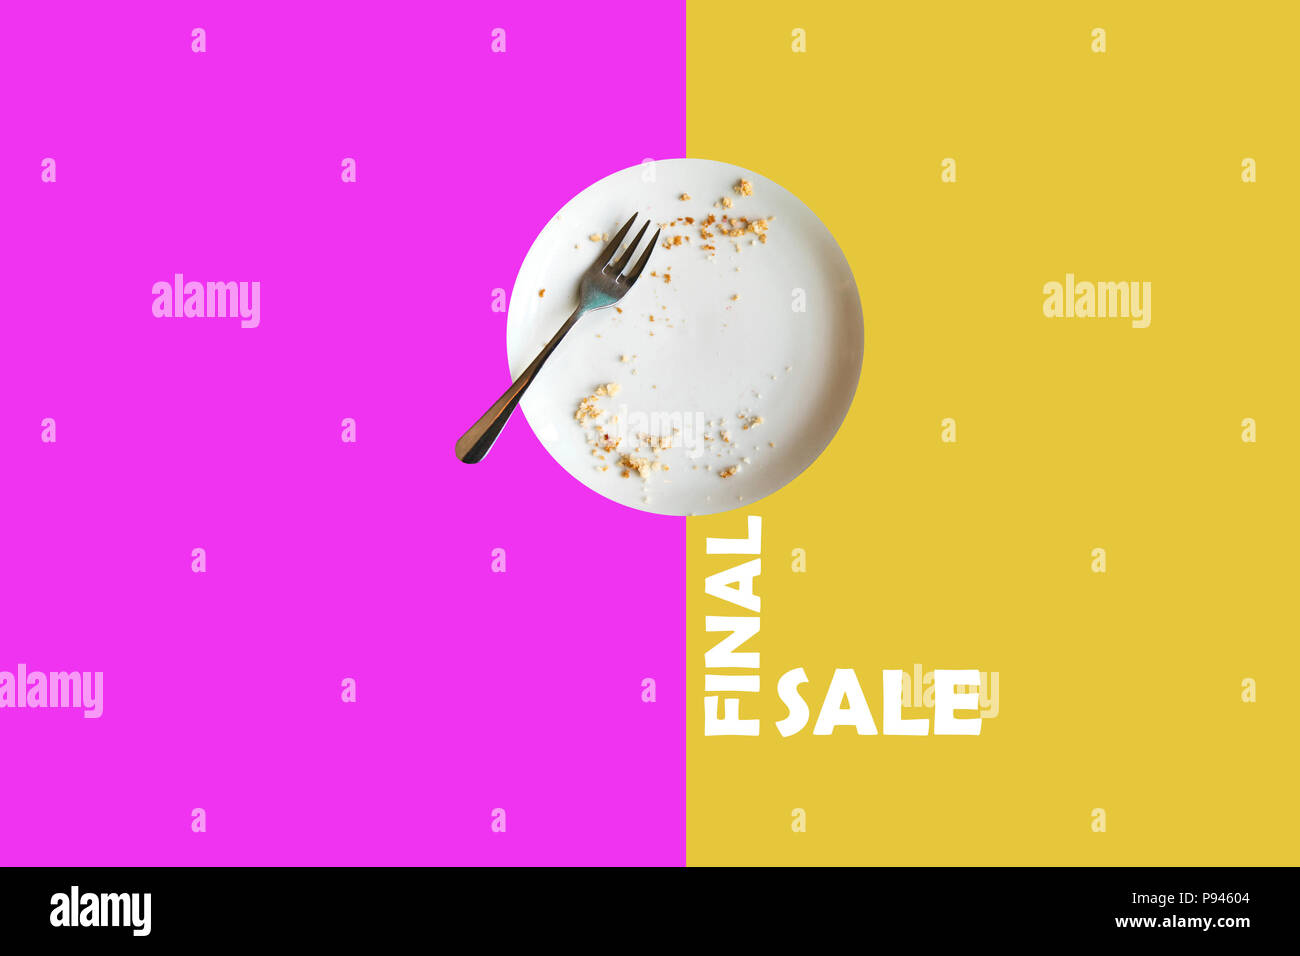 Illustration in the minimalist style of the finish sale. An empty plate with the remains of food means that the goods are quickly bought and need to b - Stock Image